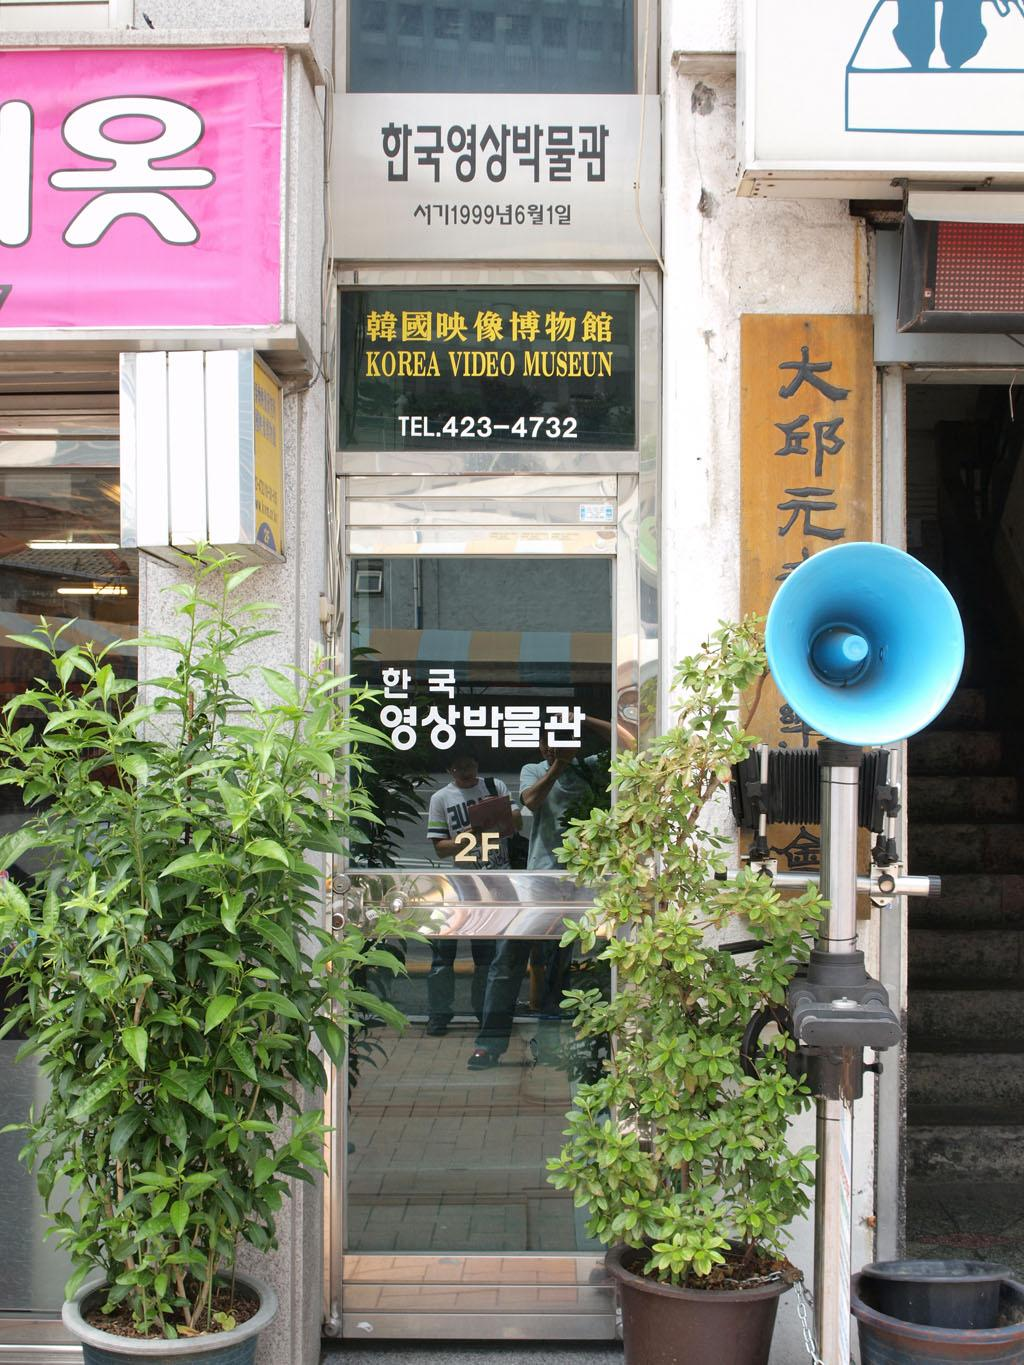 Korea Video Museum